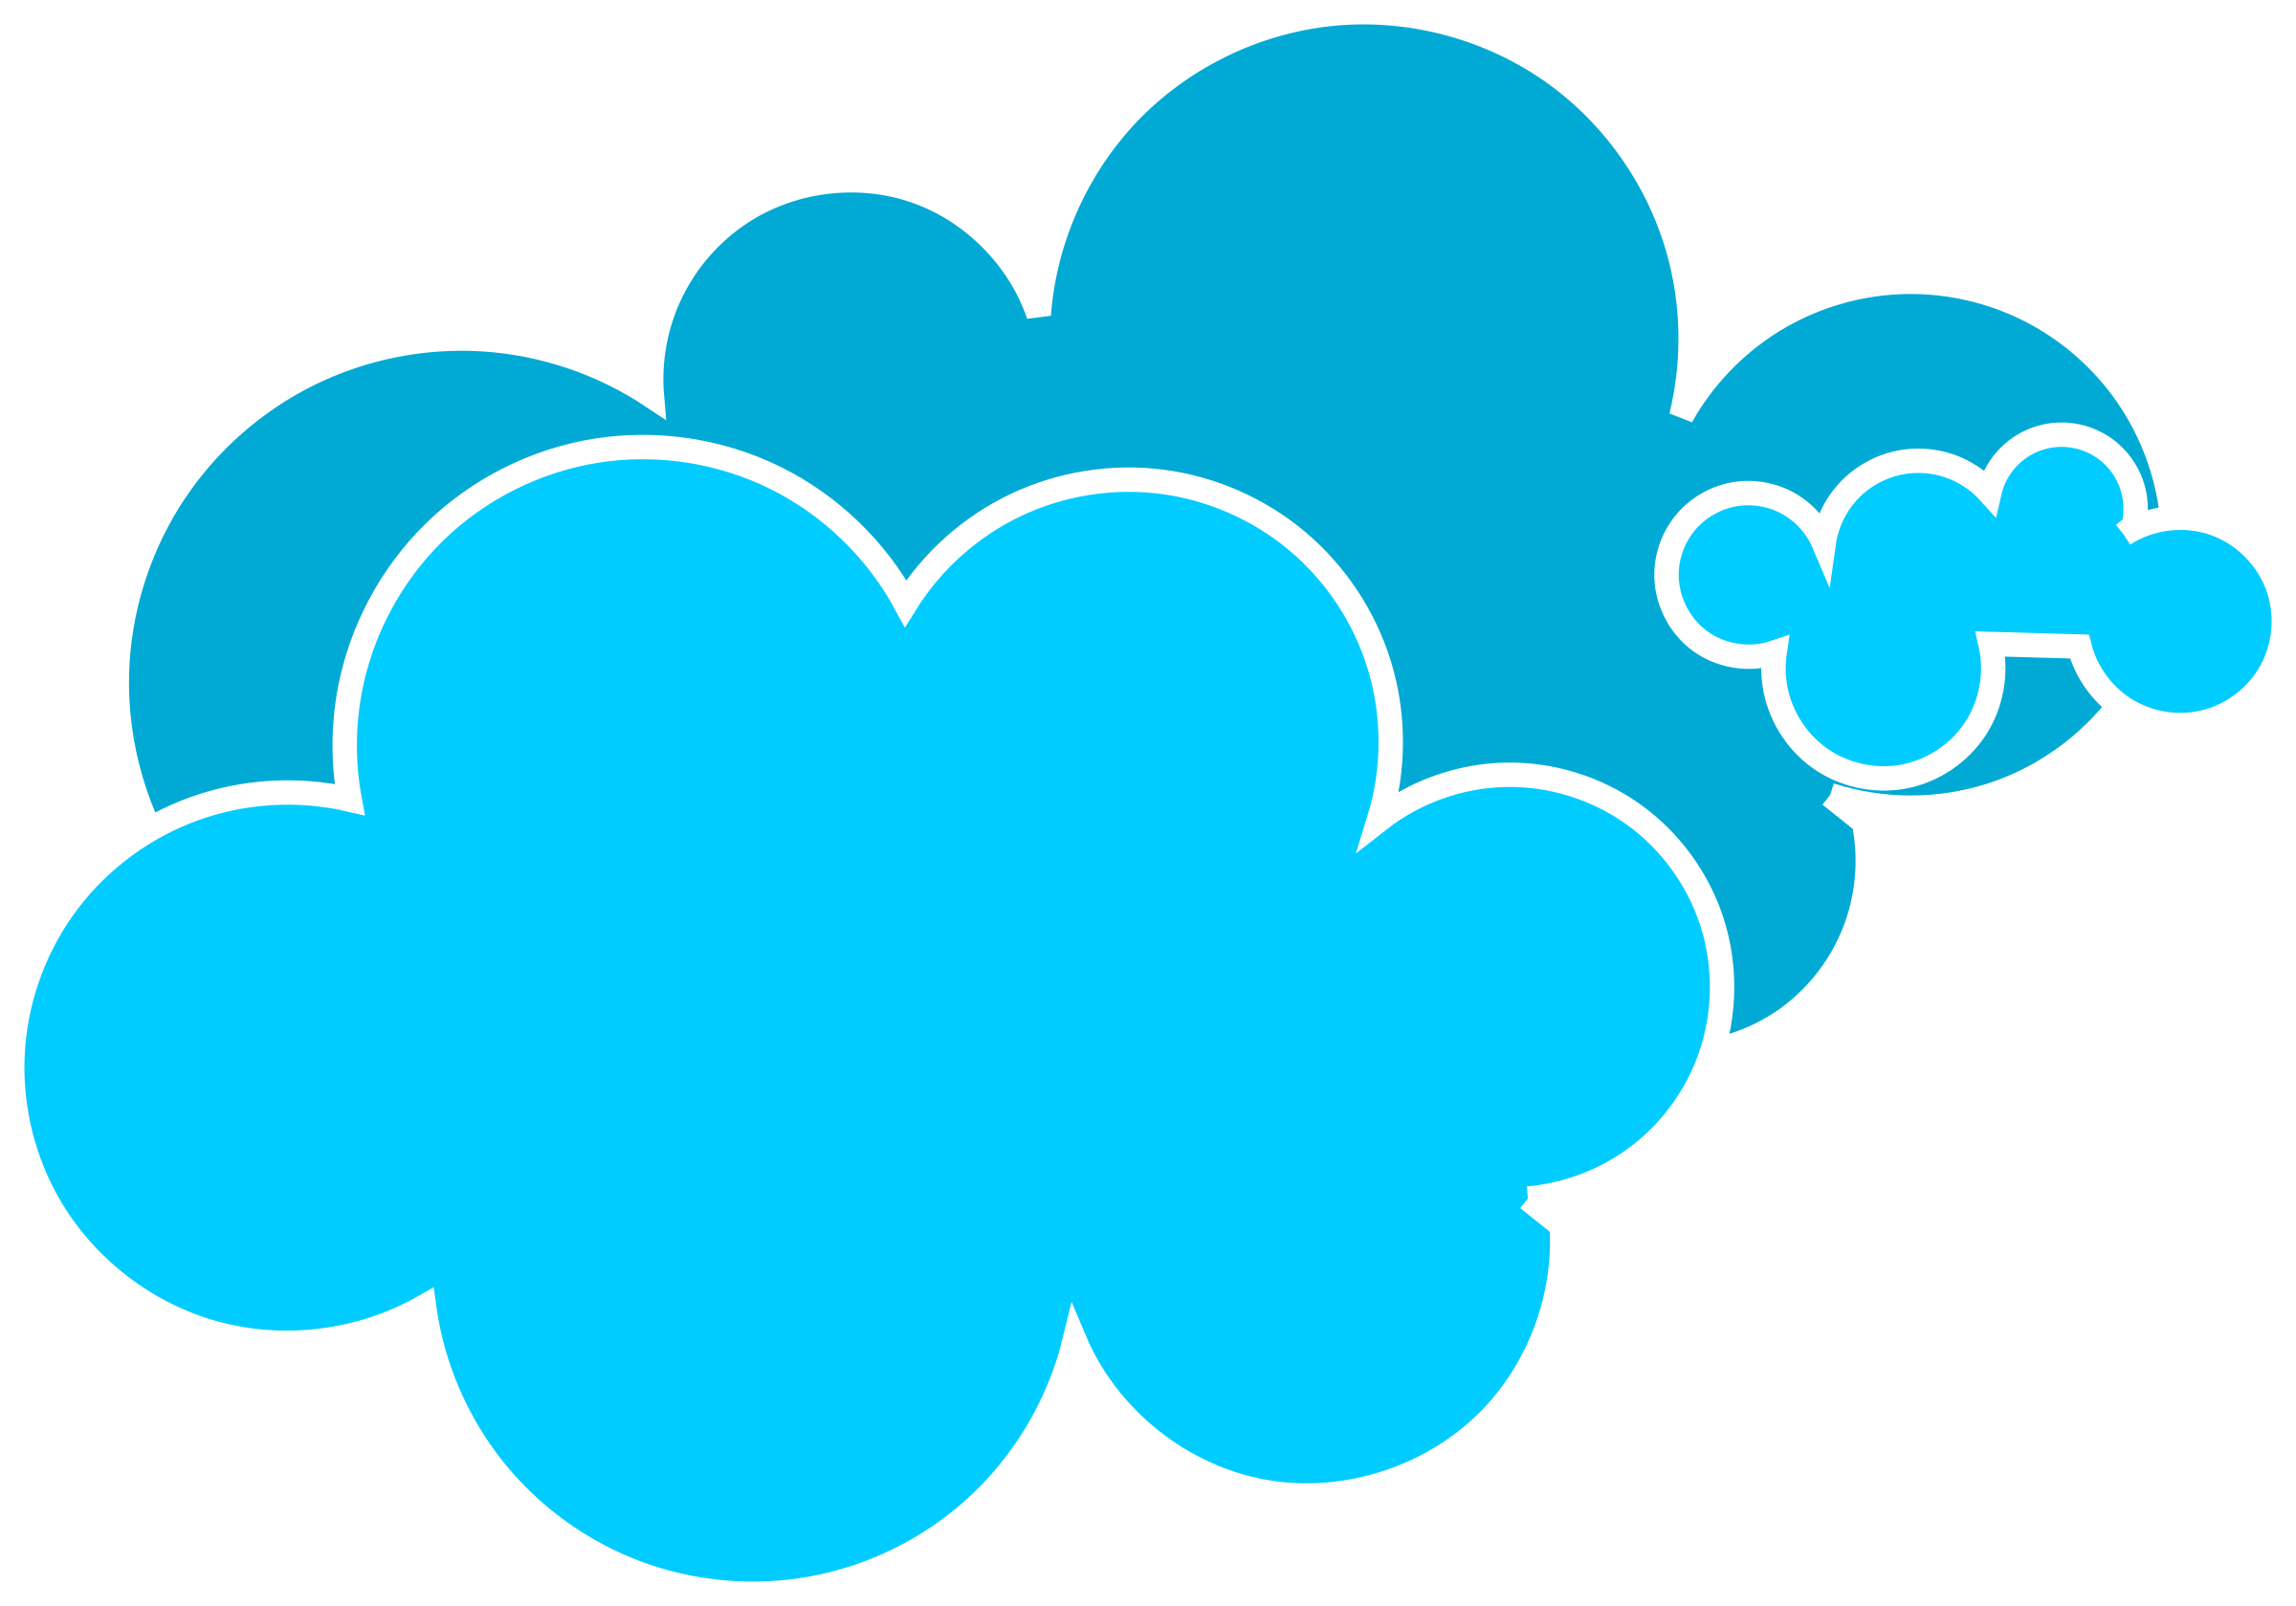 Clipart clouds png 7344 Free Transparent PNG Logos